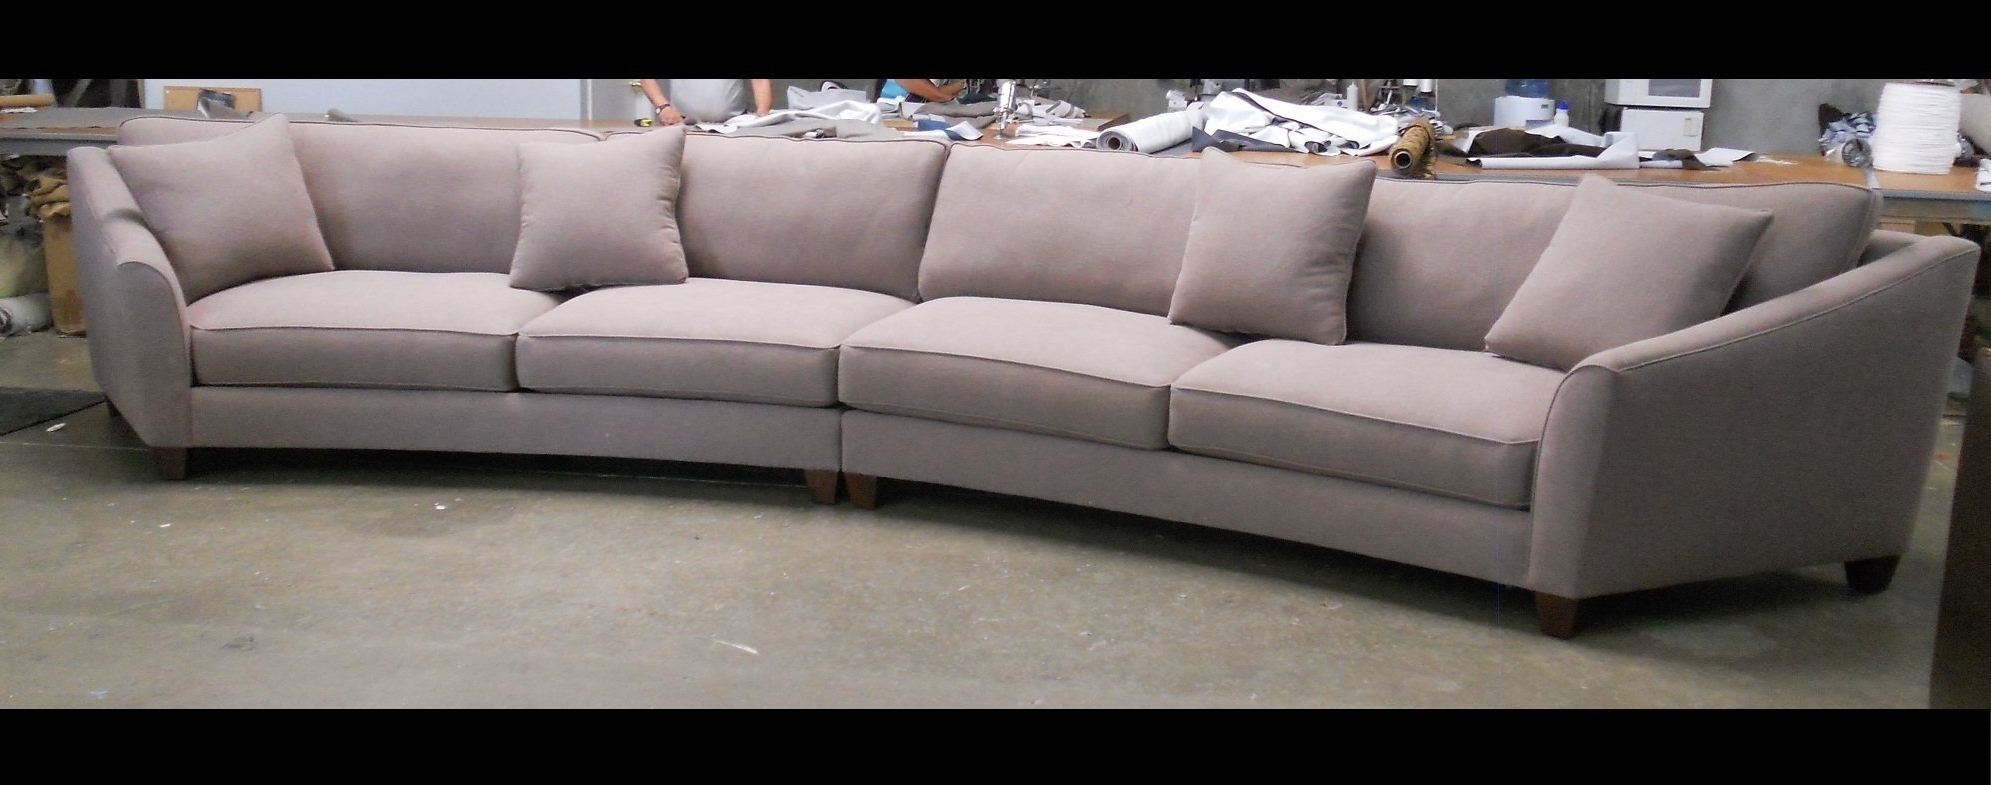 Best And Newest Nz Sectional Sofas Pertaining To Furniture : 5060 Recliner Sectional Sofa Costco $699 Corner Couch (View 2 of 15)